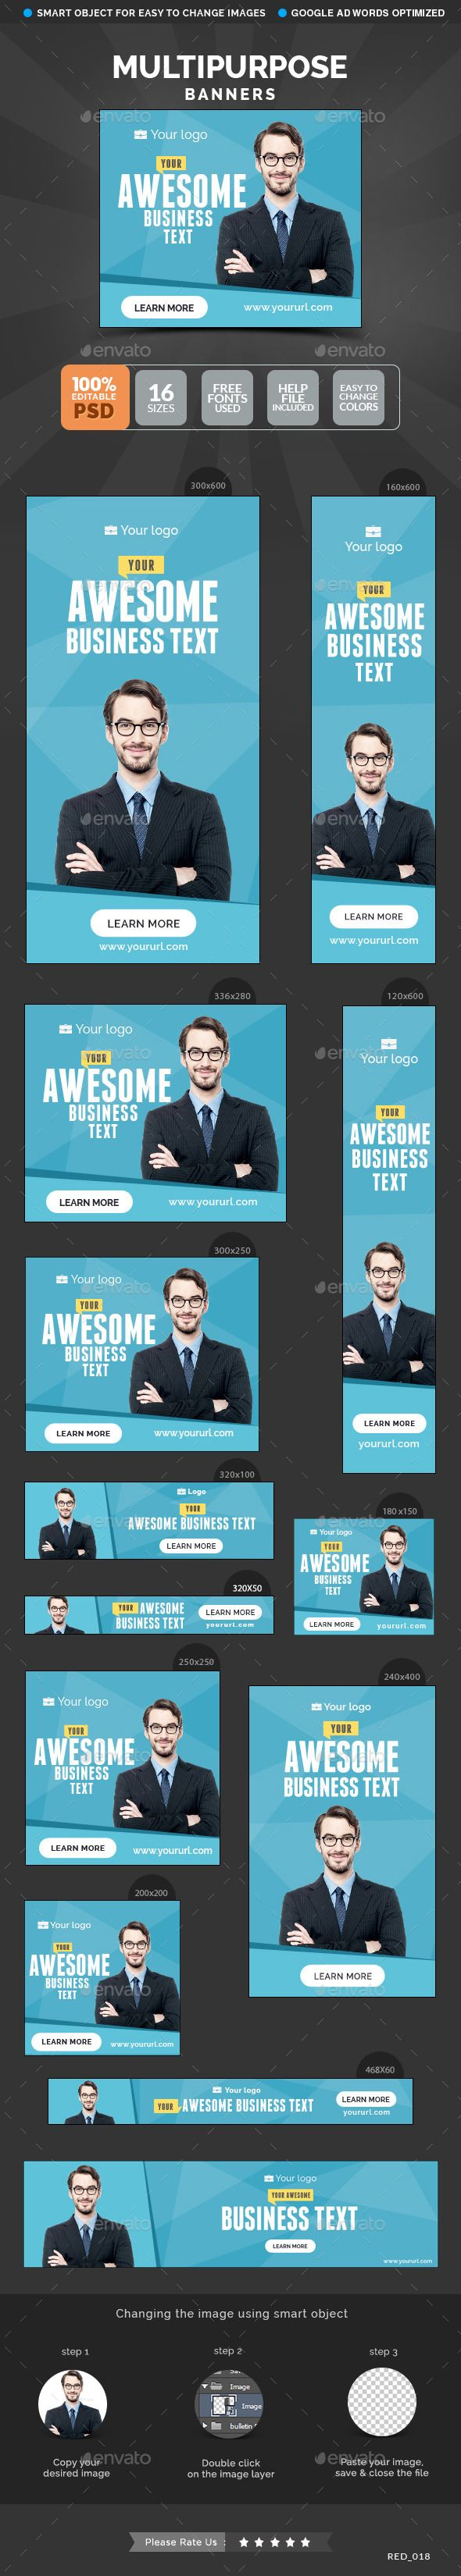 Multipurpose Banners Template PSD #banner #webbanner #design Download: http://graphicriver.net/item/multipurpose-banners/10654611?ref=ksioks